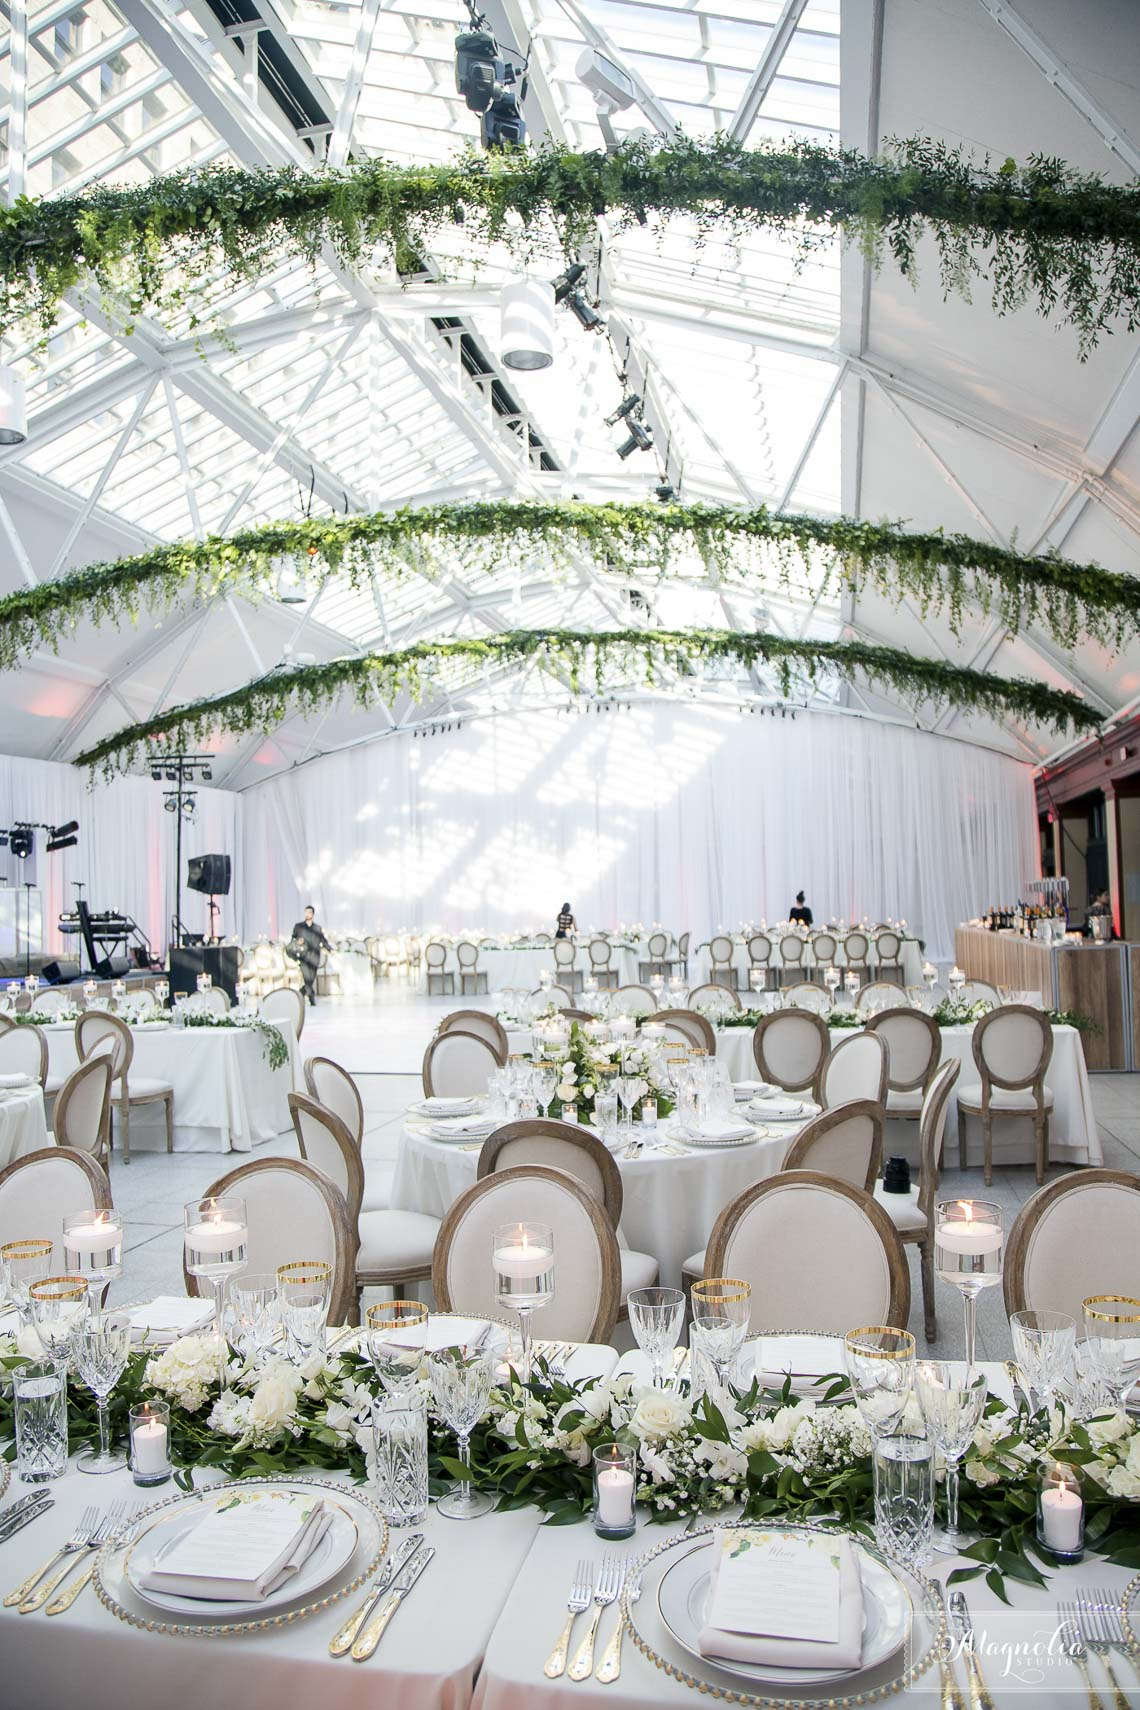 Wedding Reception Photographer Montreal Québec | Magnolia Studio Photography